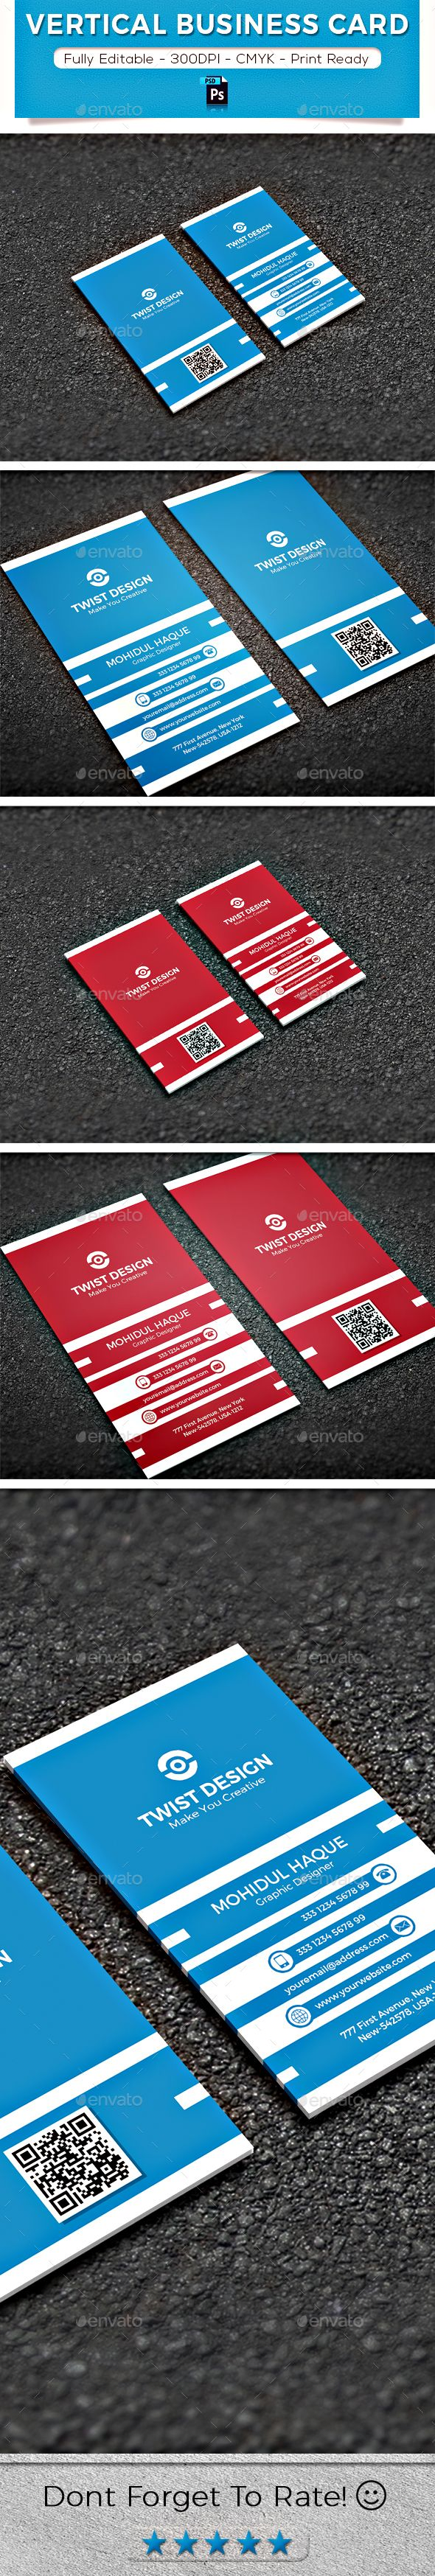 Vertical business card vertical business cards business cards and vertical business card corporate business cards download here httpsgraphicriveritemvertical business card19935516refalena994 reheart Choice Image